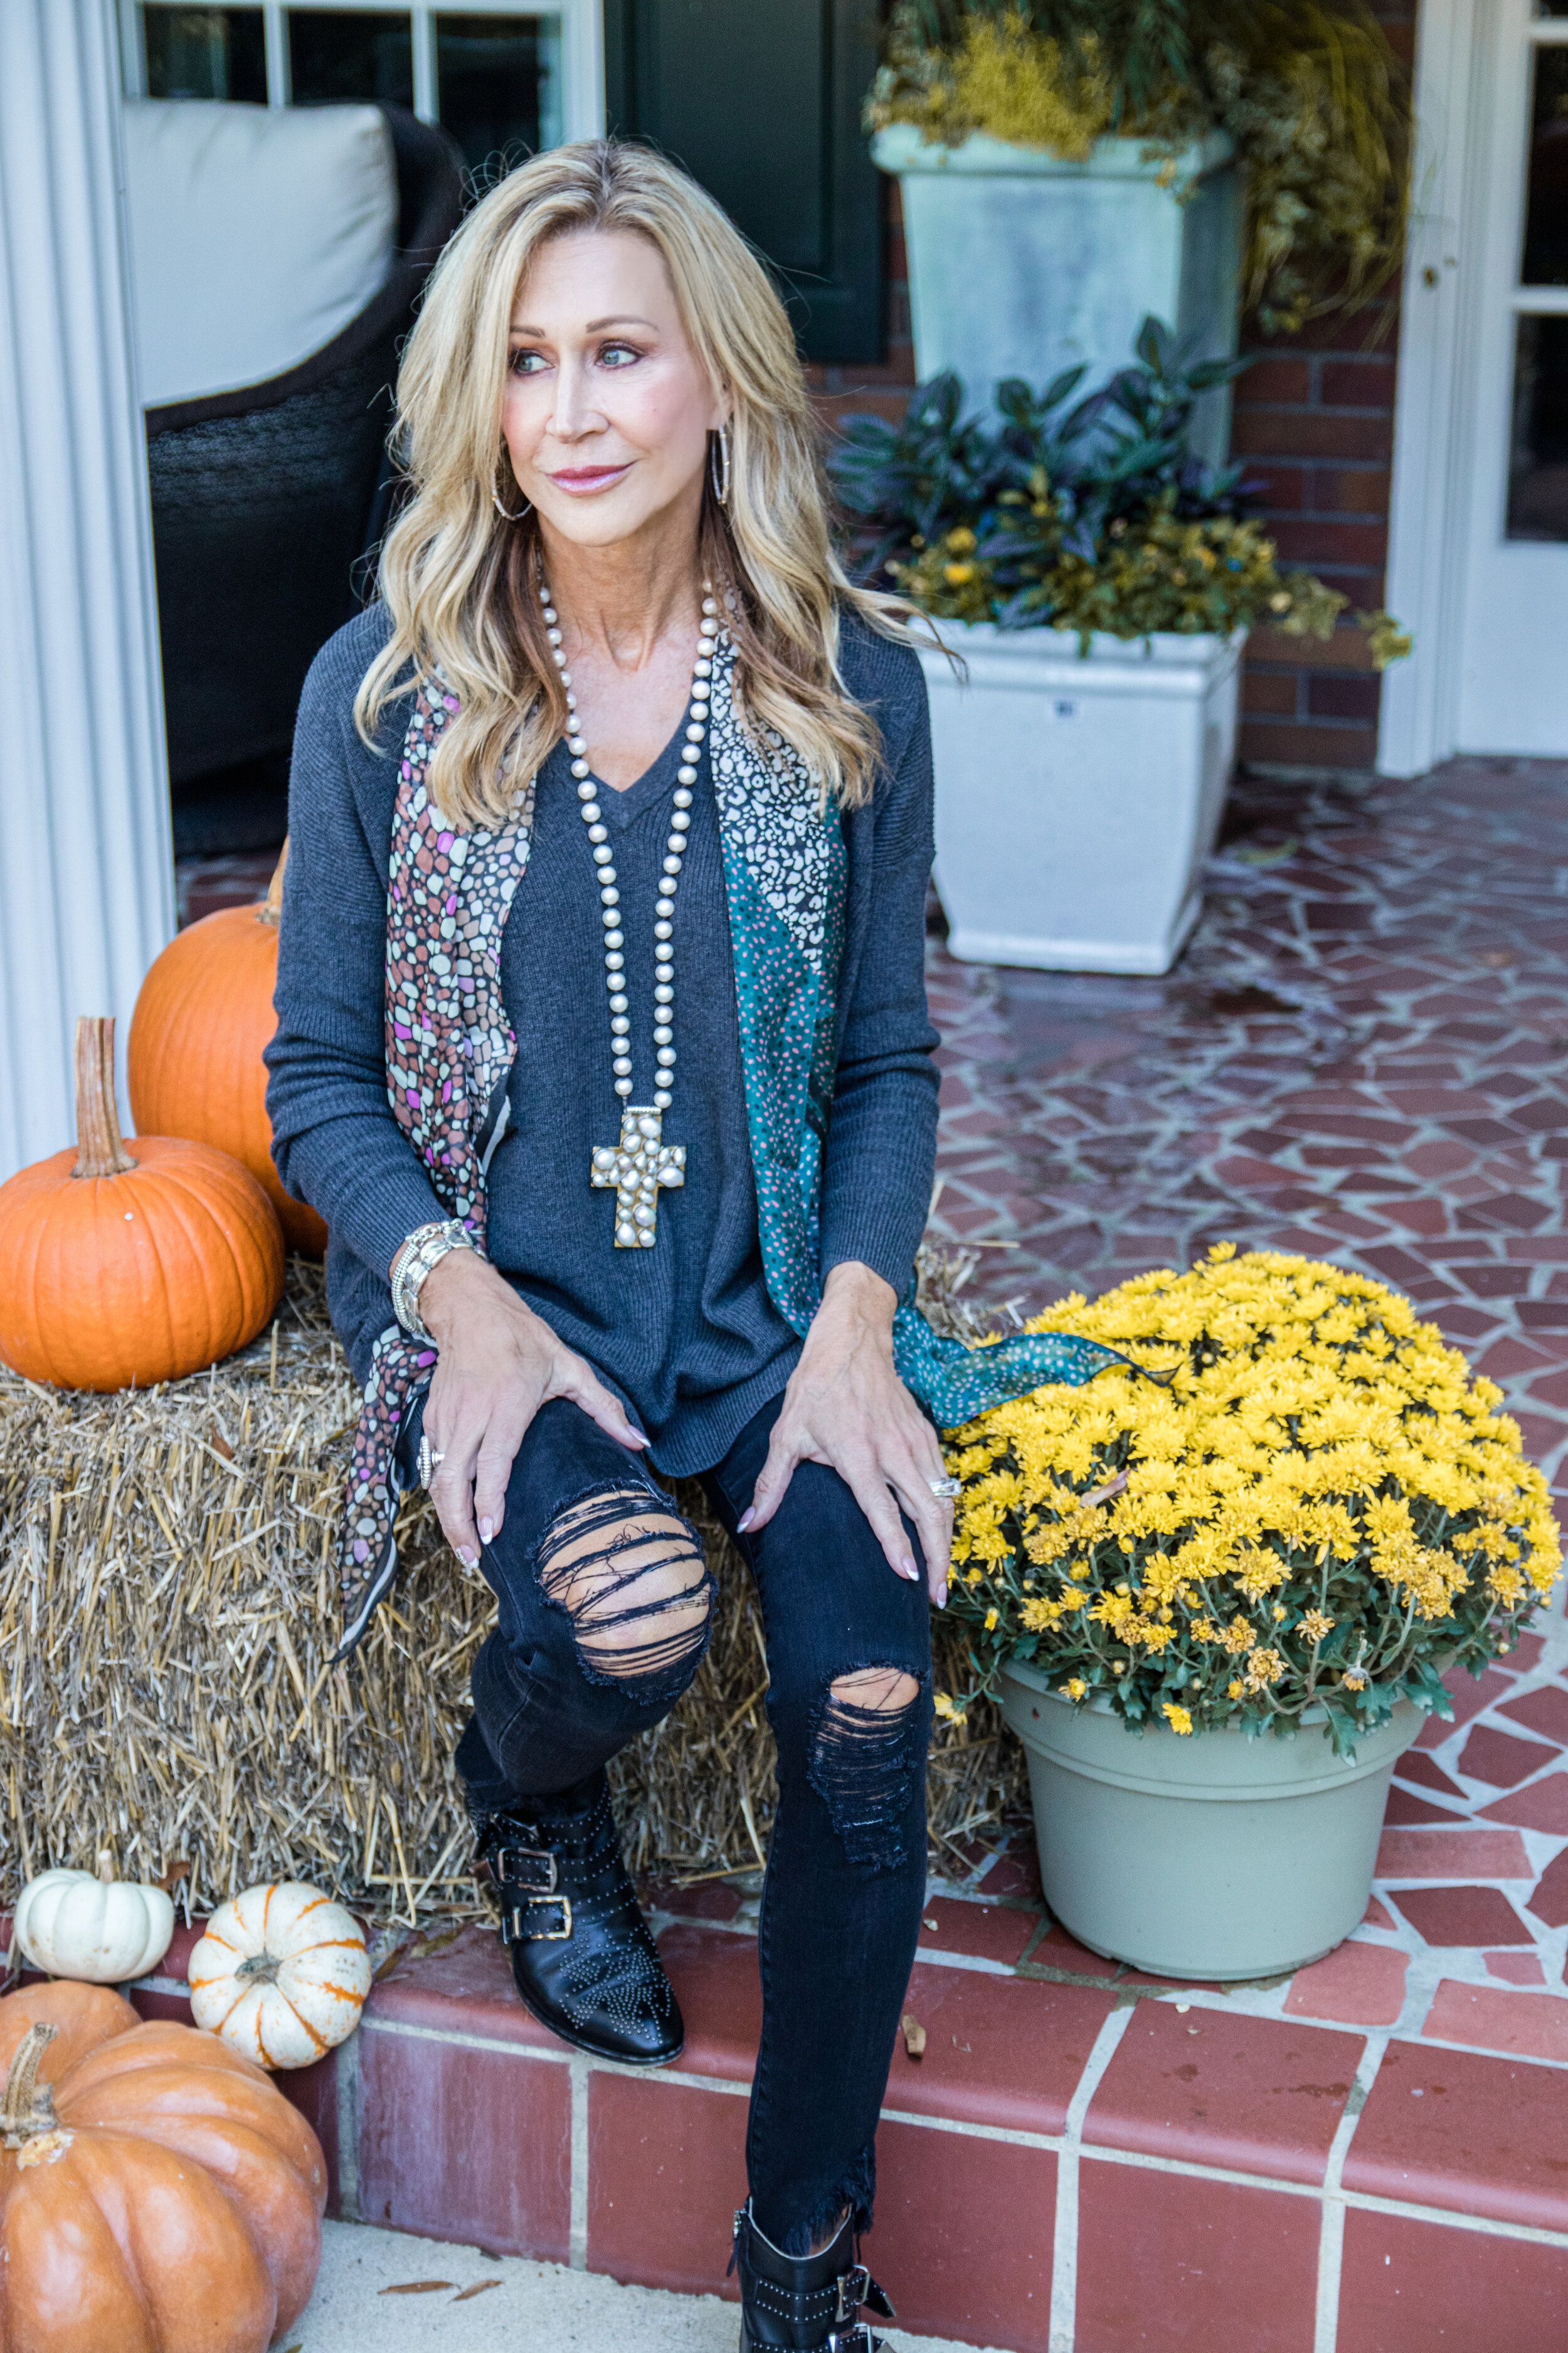 Saturday Style with Cabi - Crazy Blonde Life